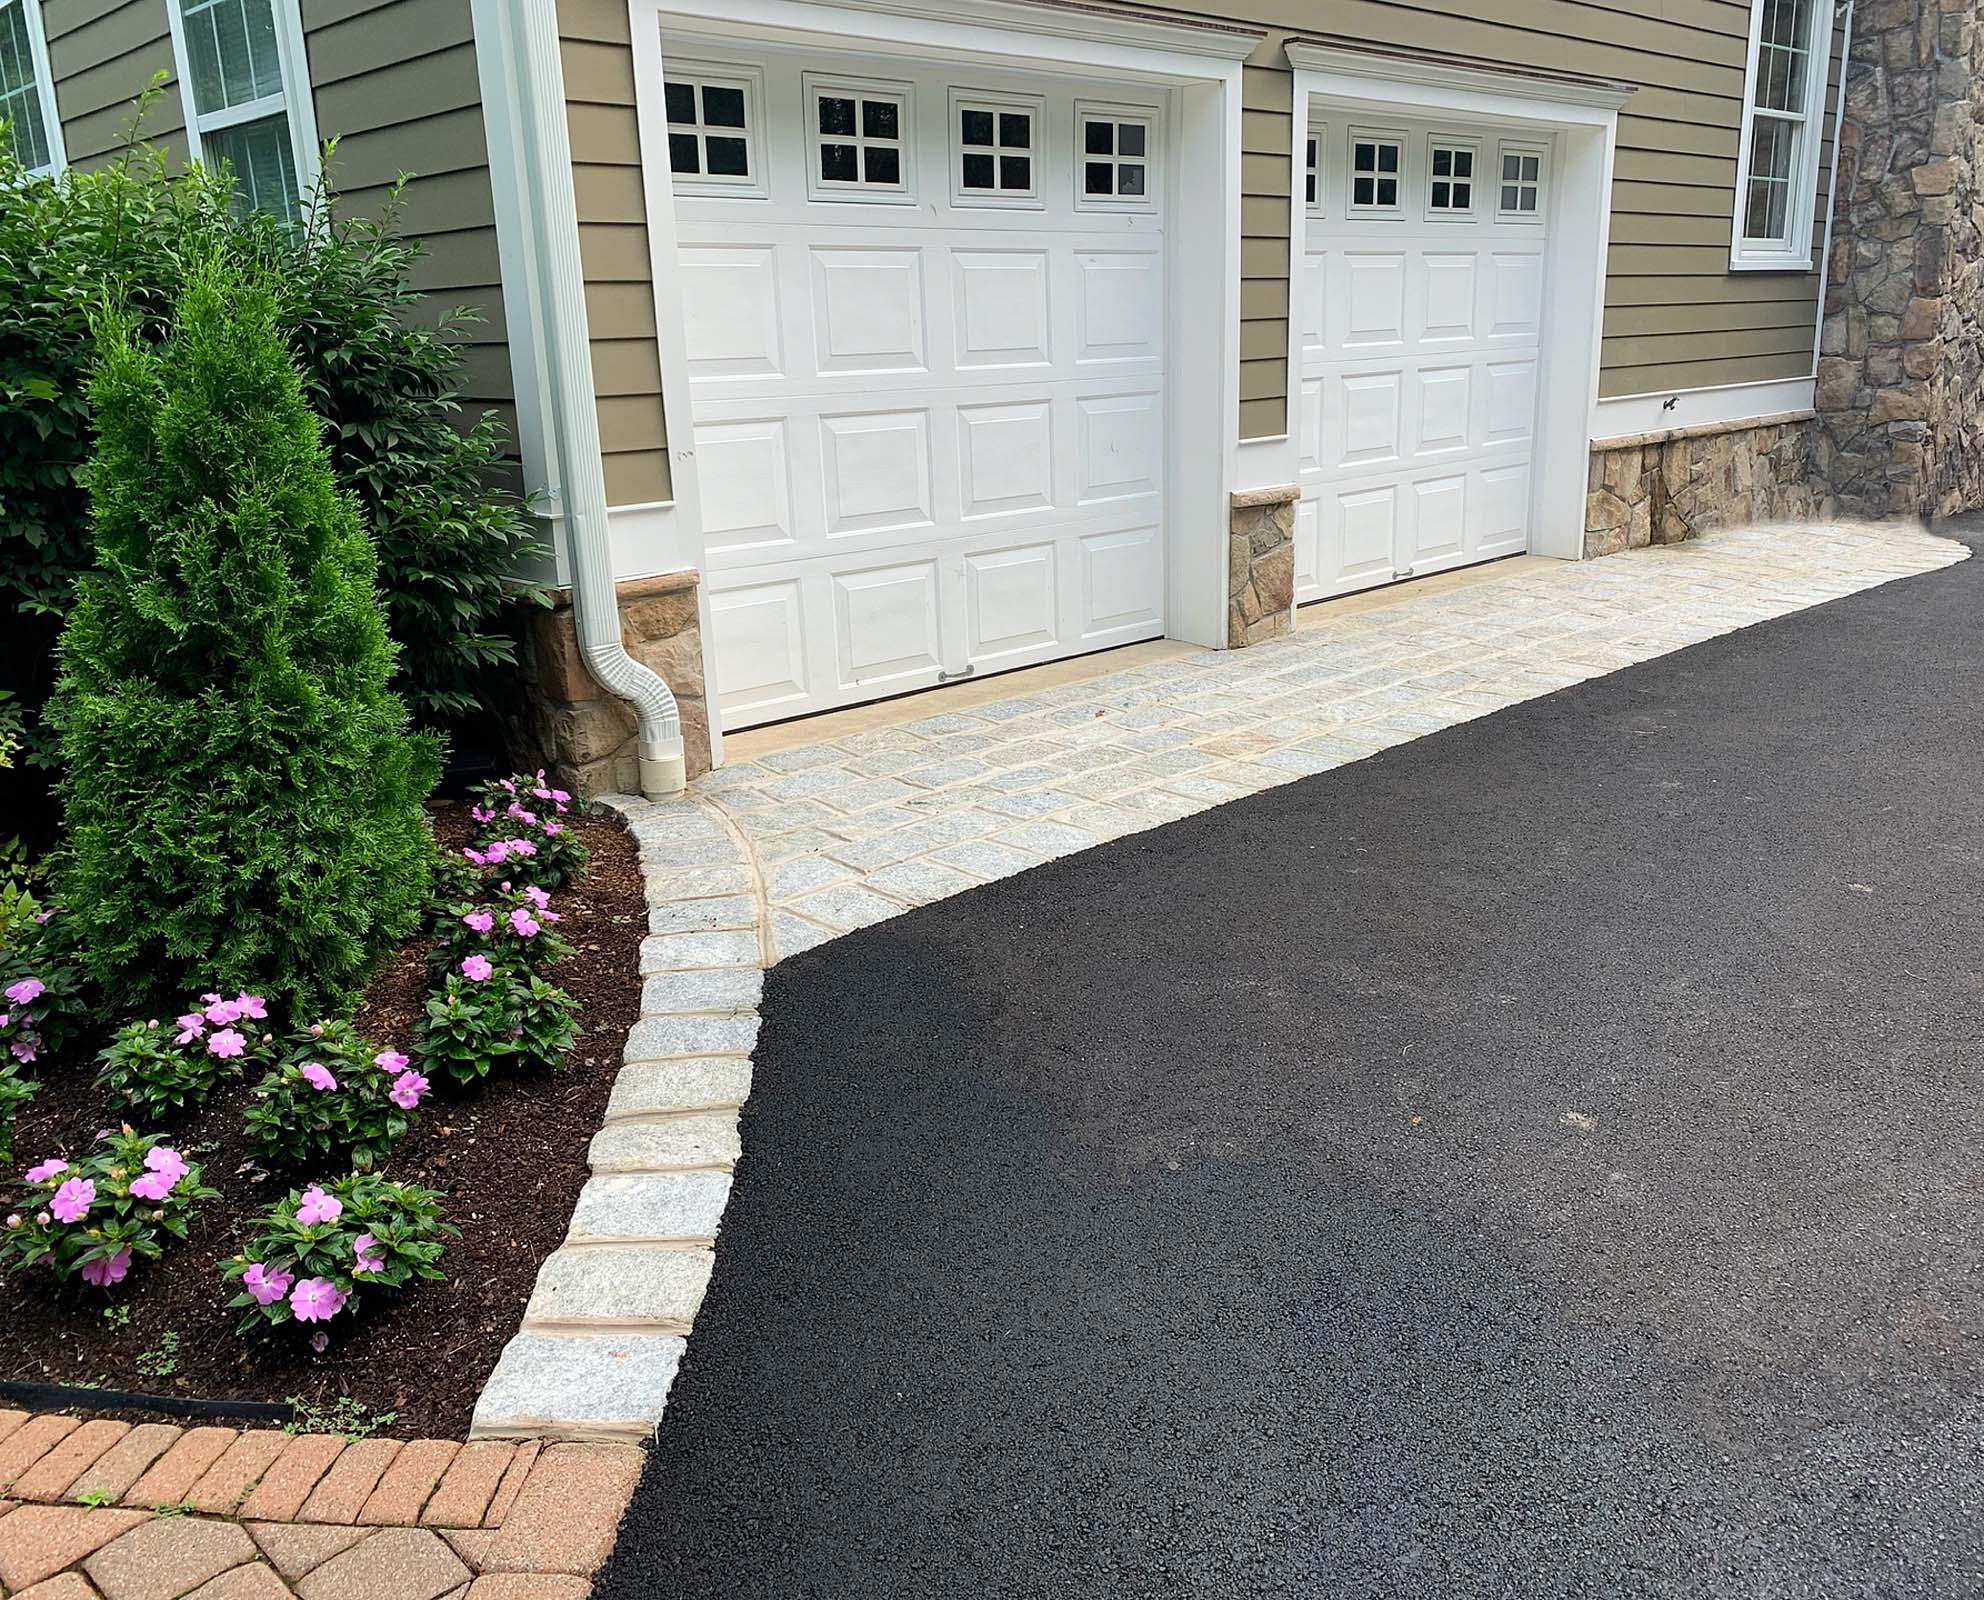 Paved driveway with curb detailing